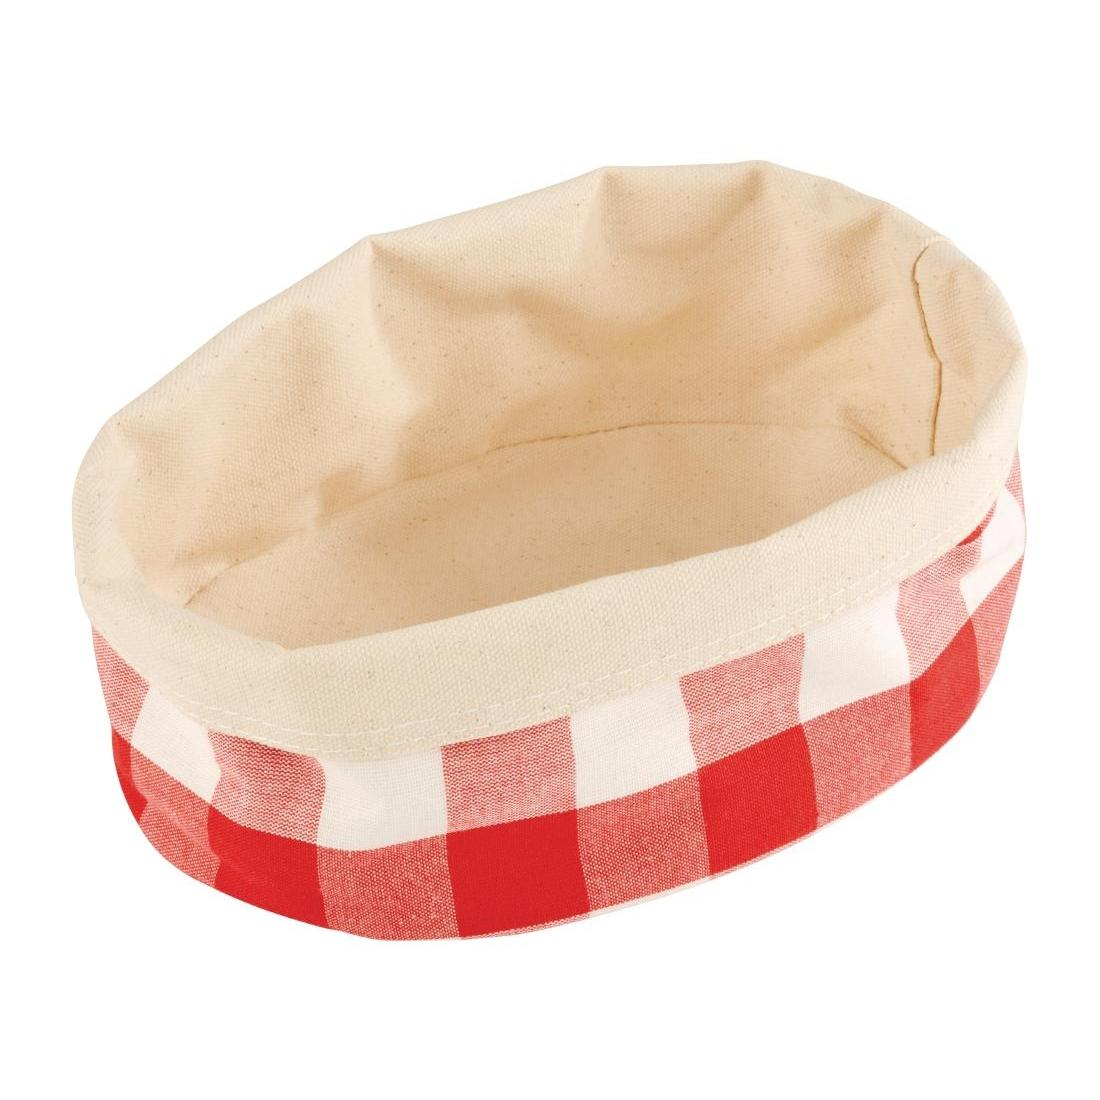 DA656 - APS Bread Basket Oval Small Red - Each - DA656